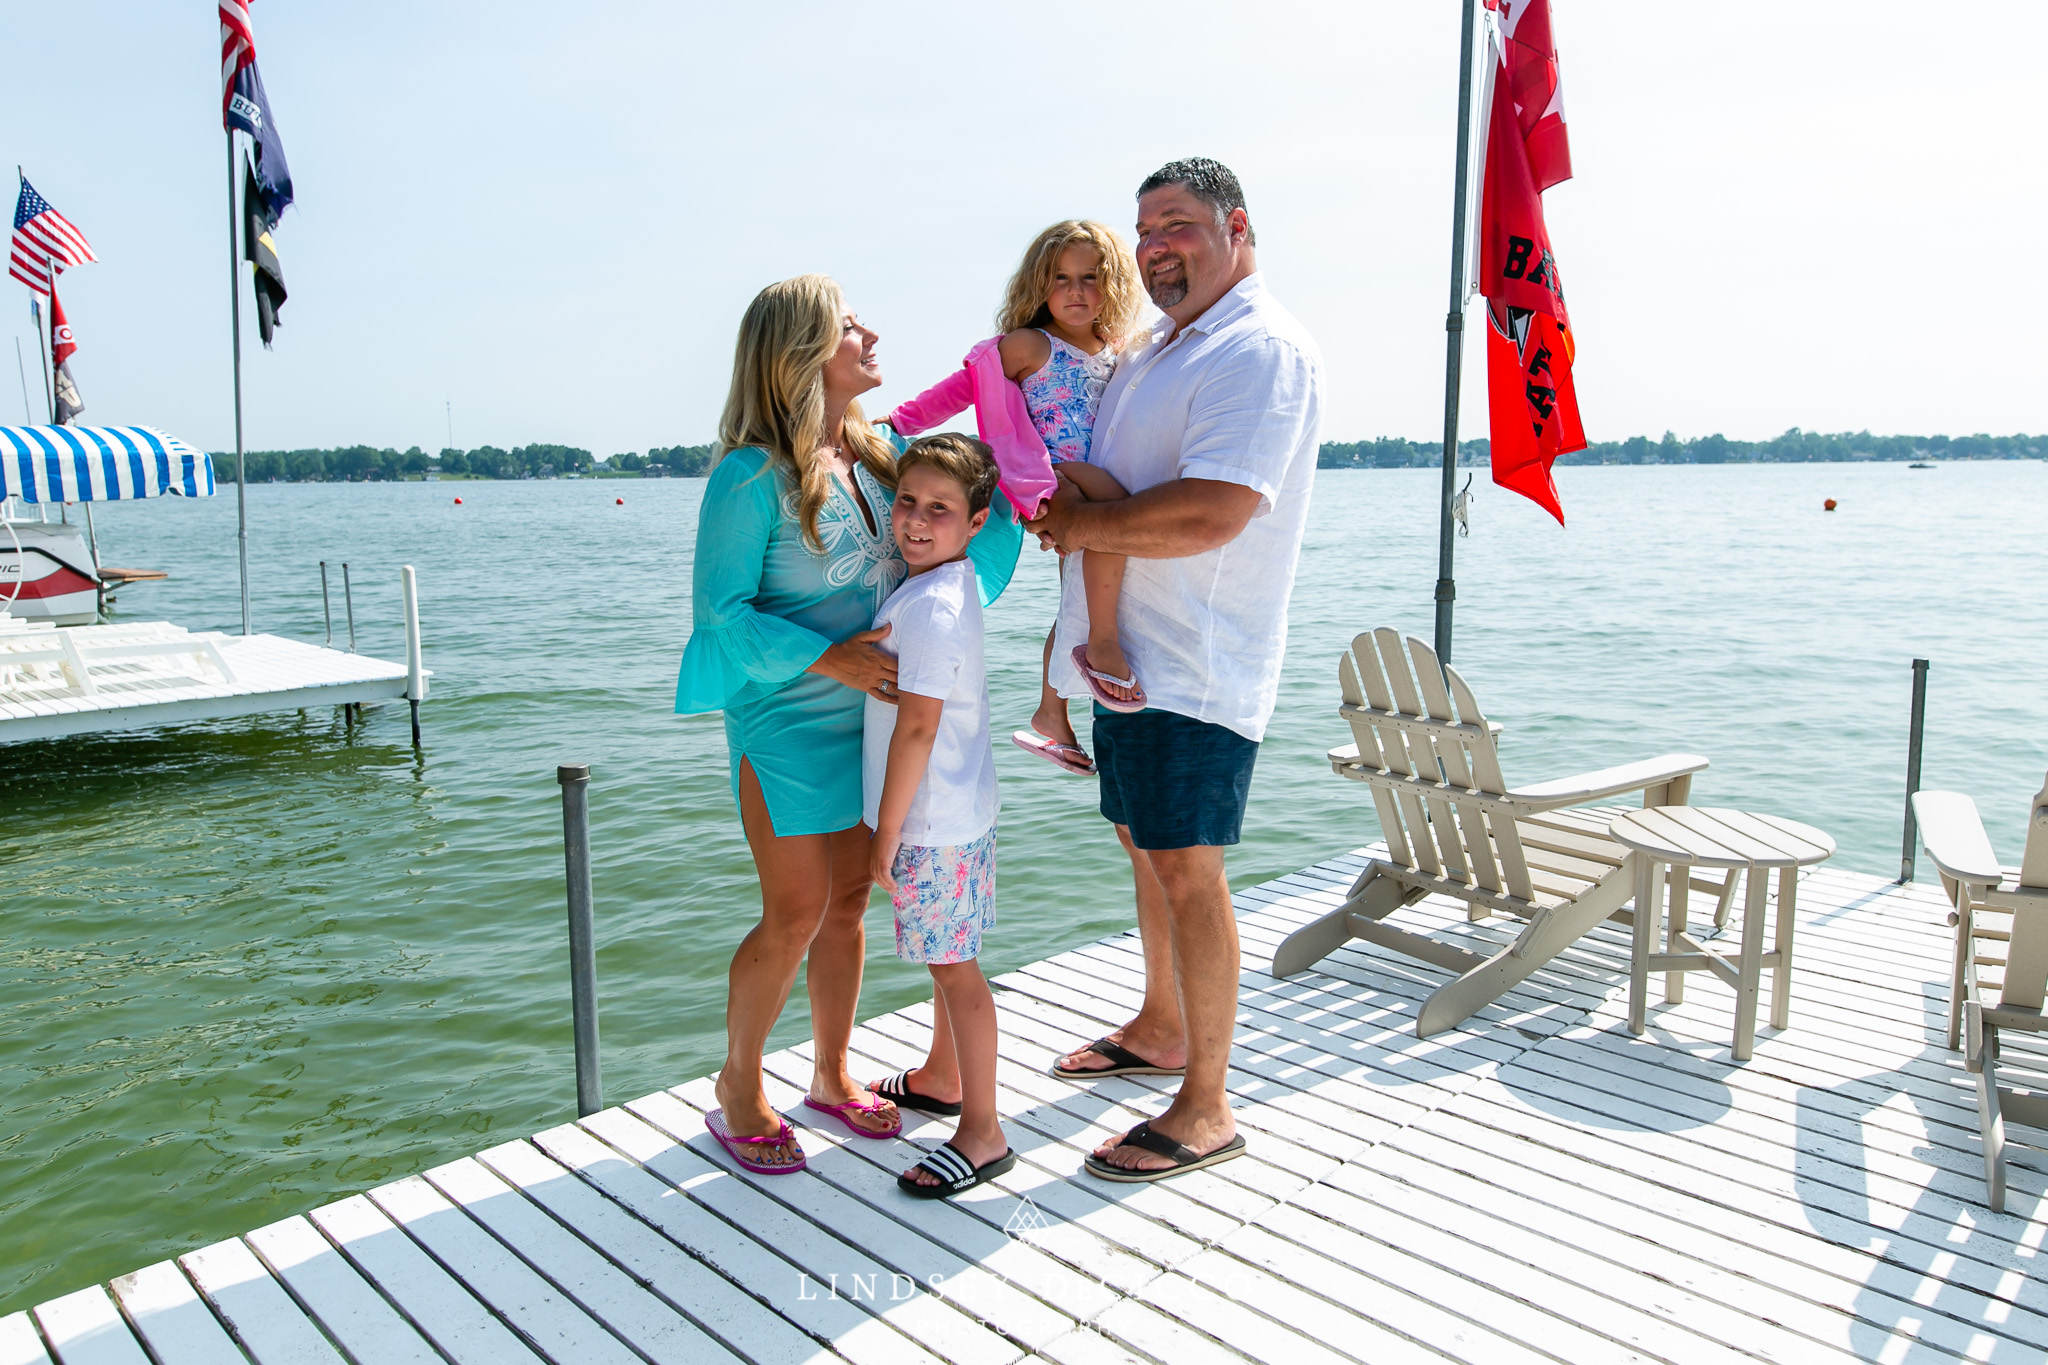 lake wawasee family film videographer and photographer